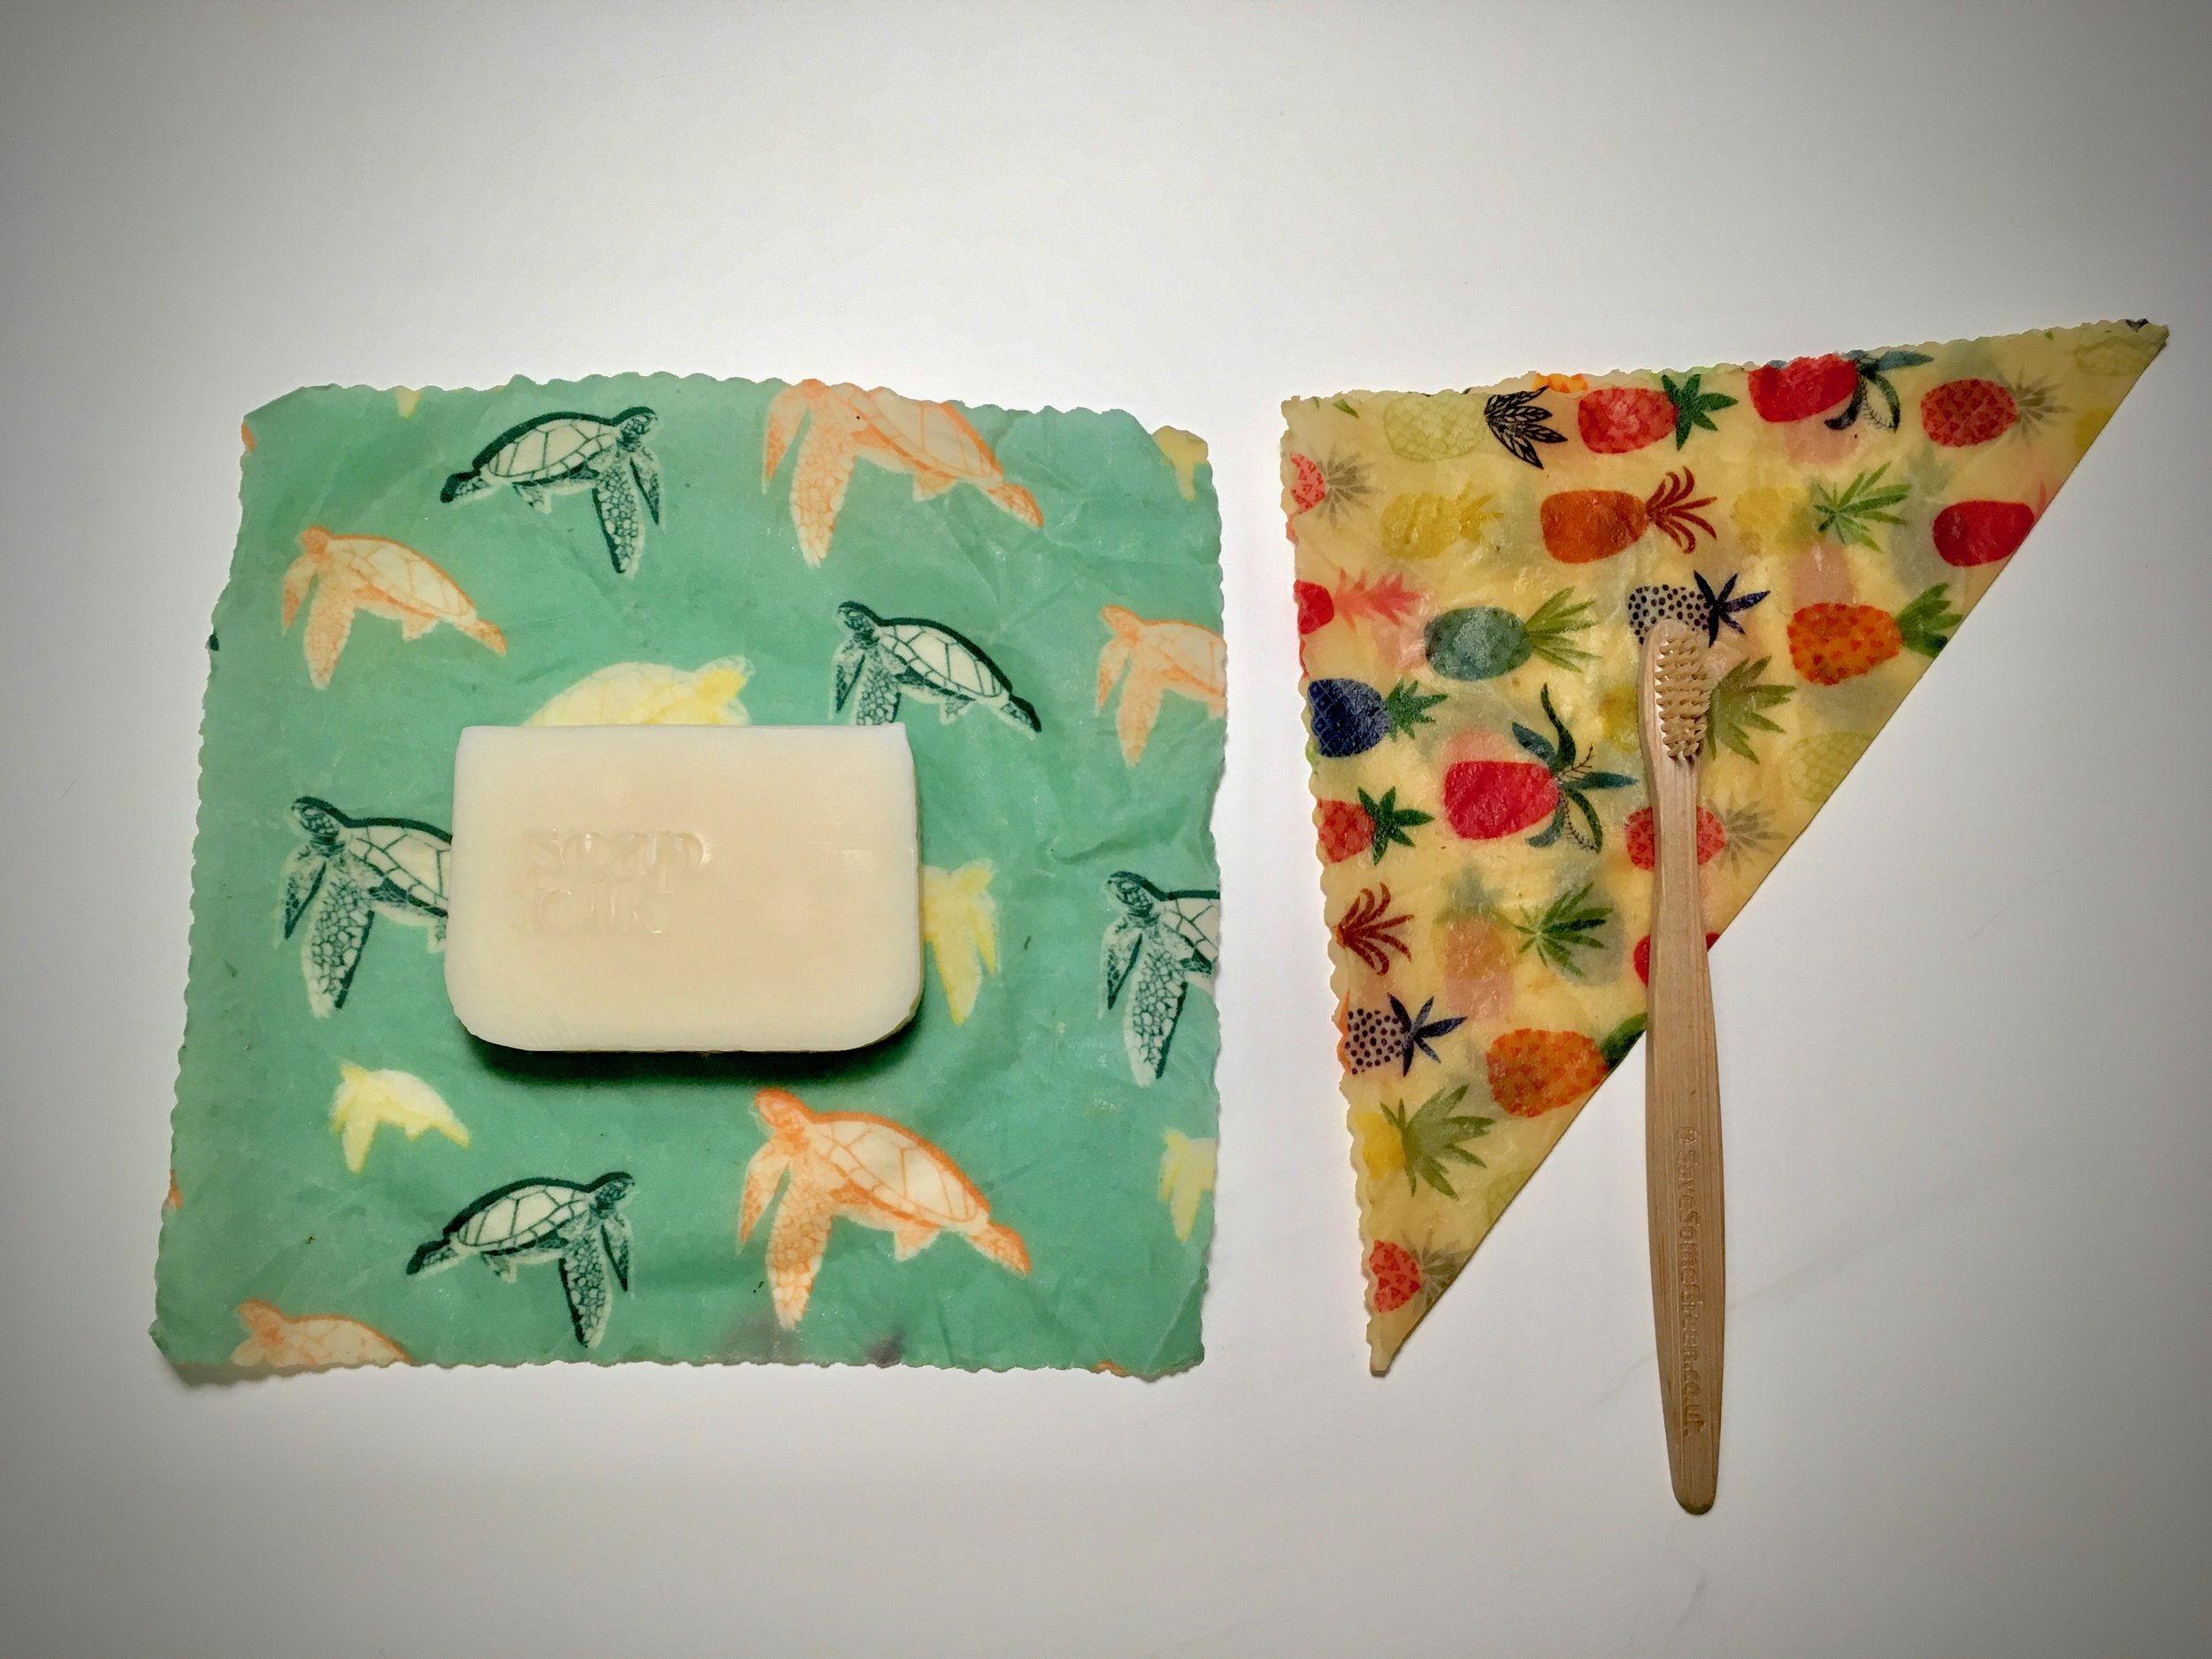 Beeswax Wraps for covering soap and toothbrush!